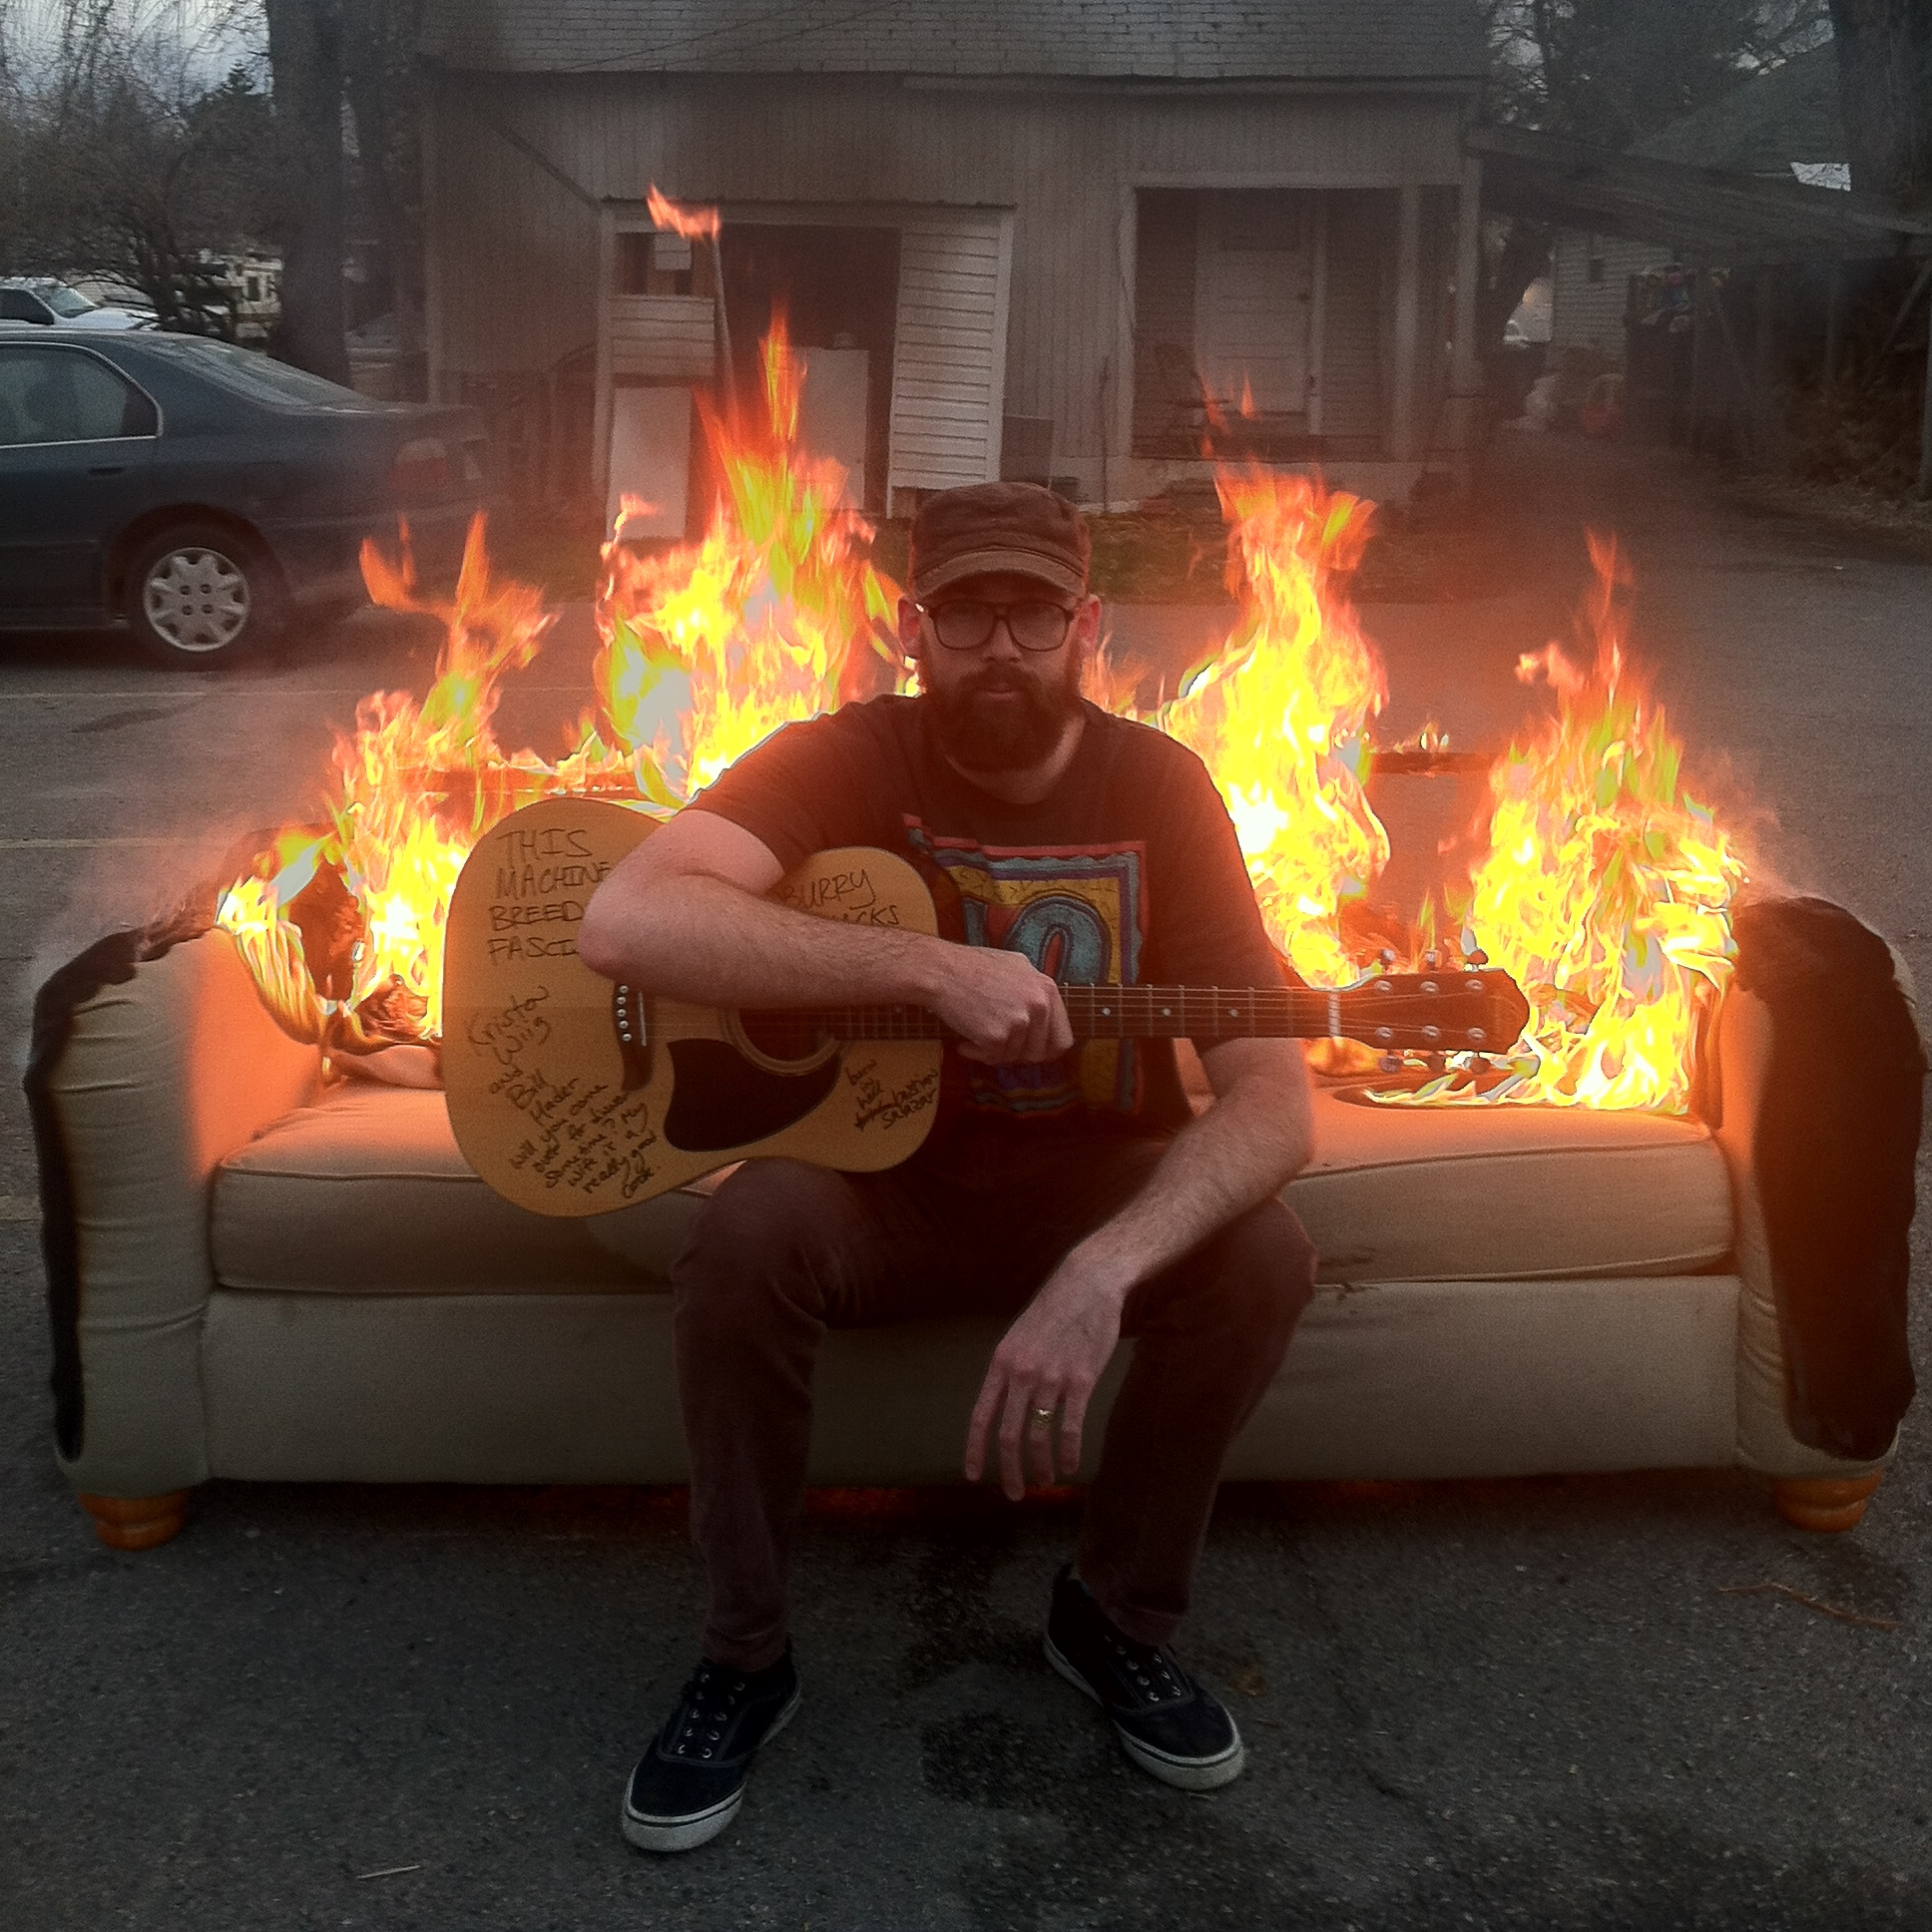 Dre Danburry sat on a sofa with fire behind him.